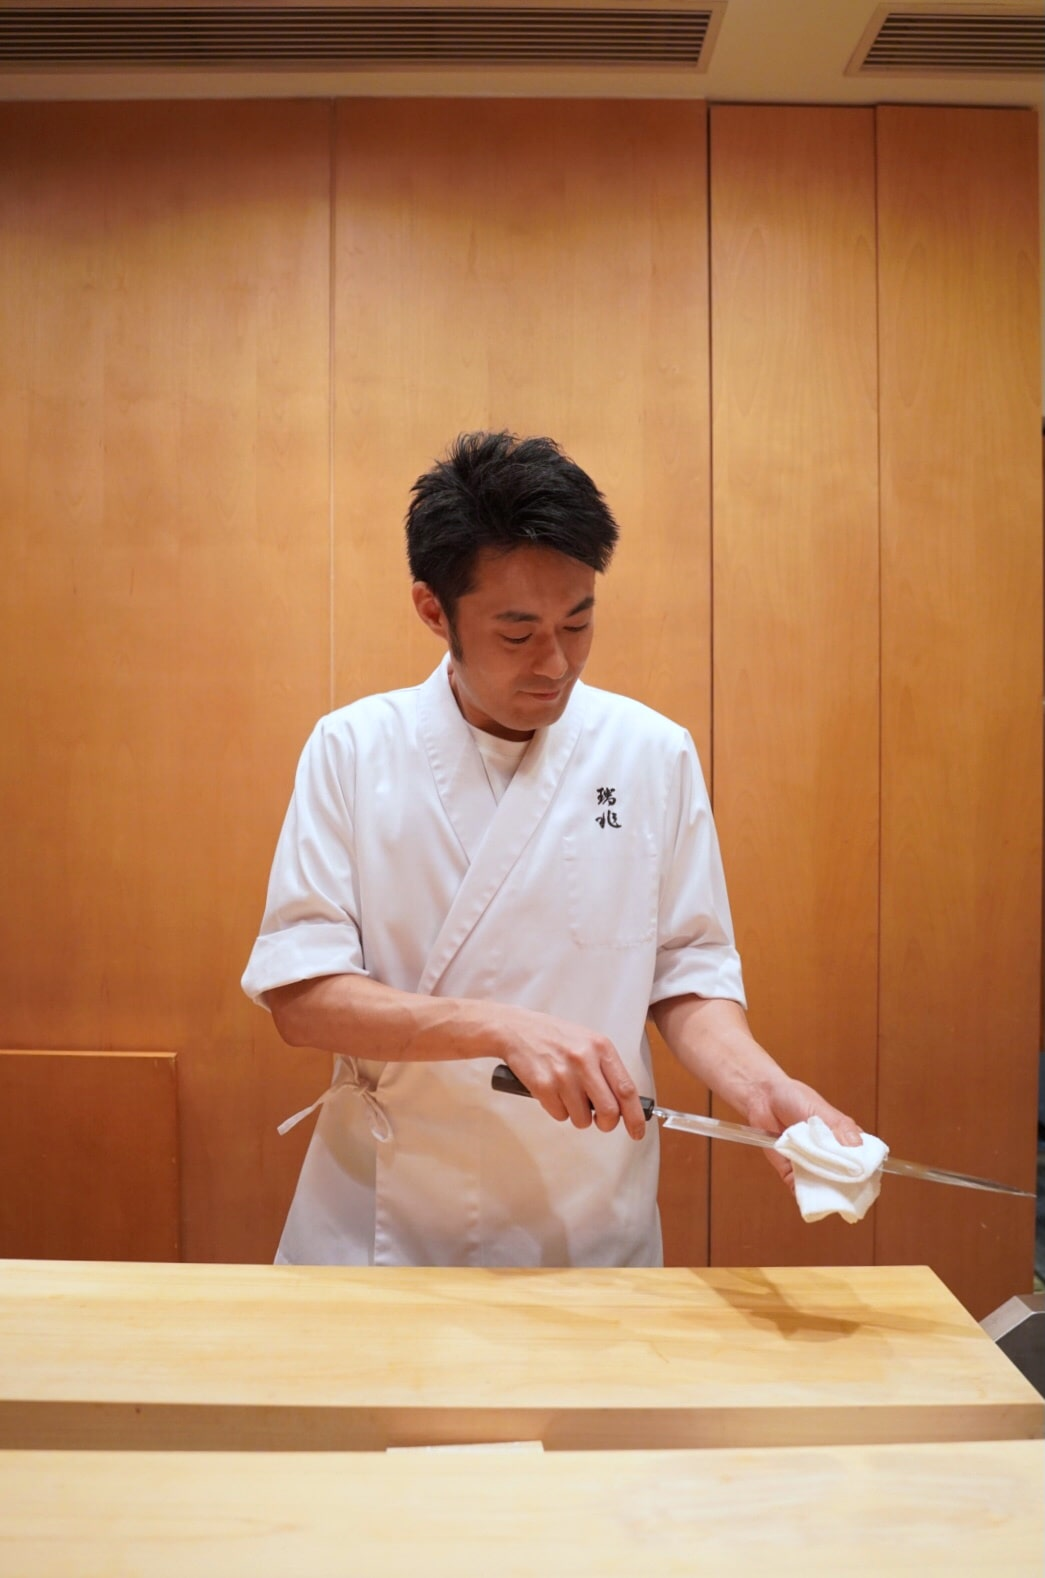 chef-suzuki-fumio-kappo-zuicho-michelin-one-star-hong-kong.jpg